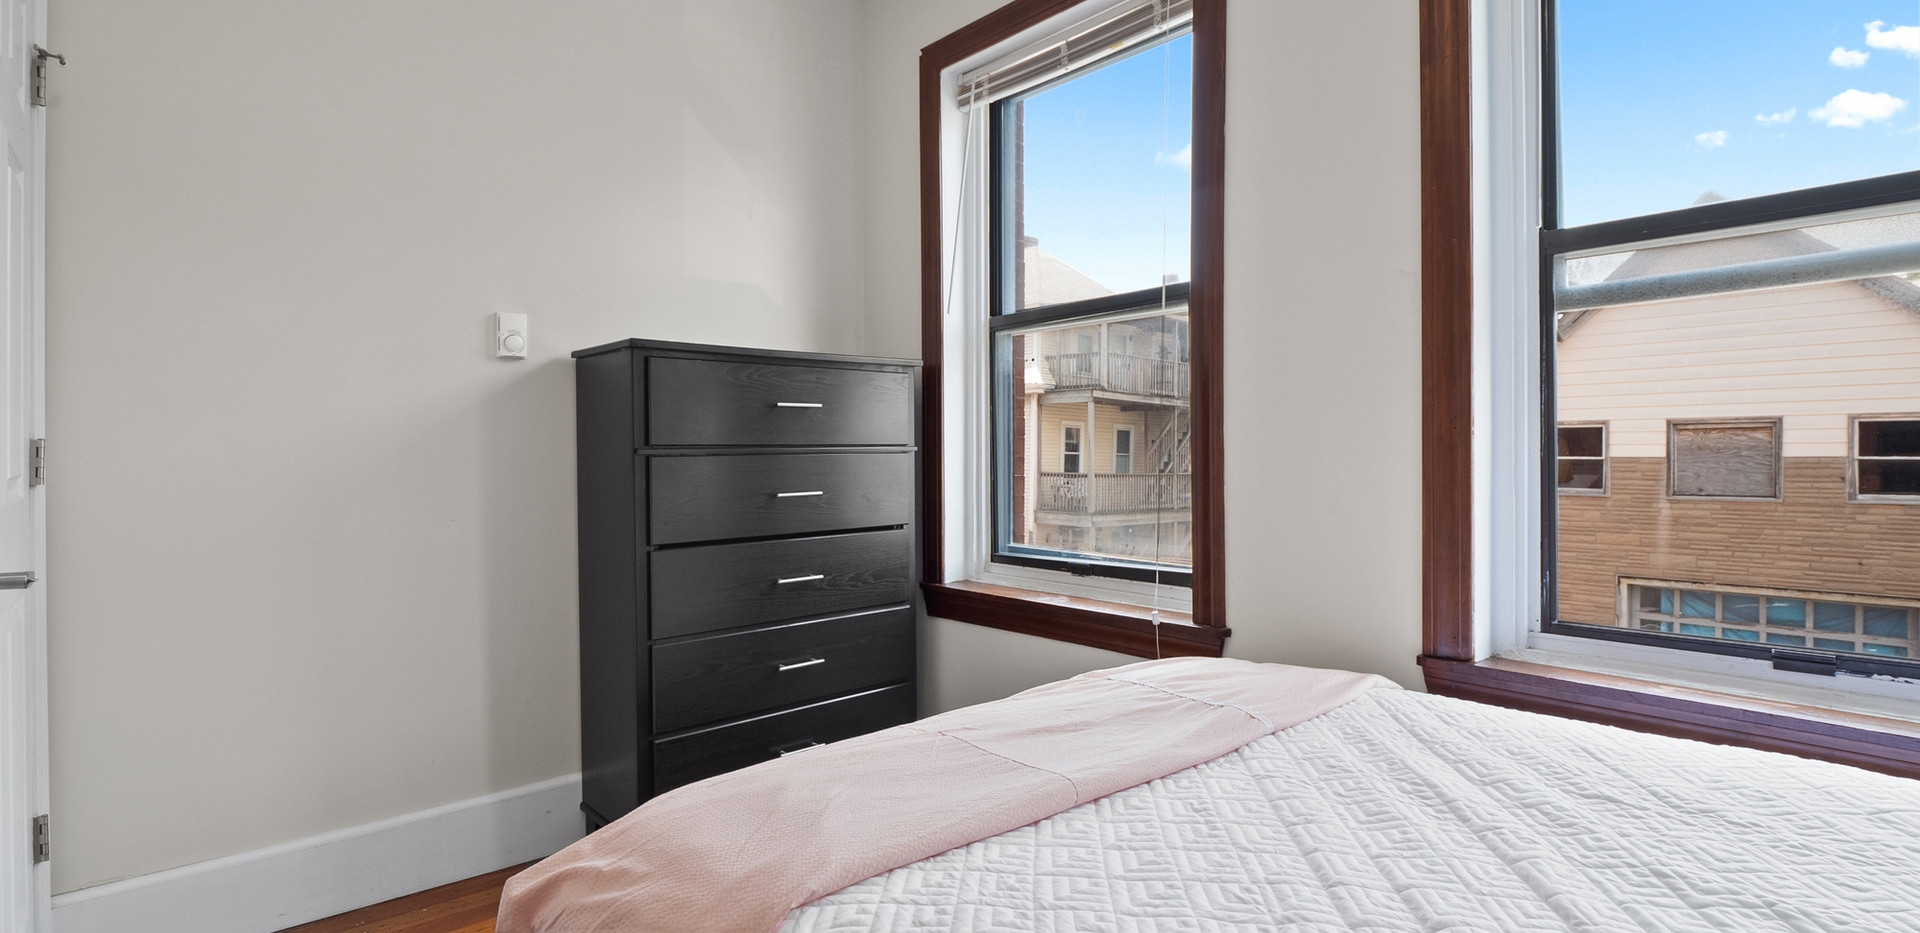 Bedroom B at 32 Shelby Unit 2